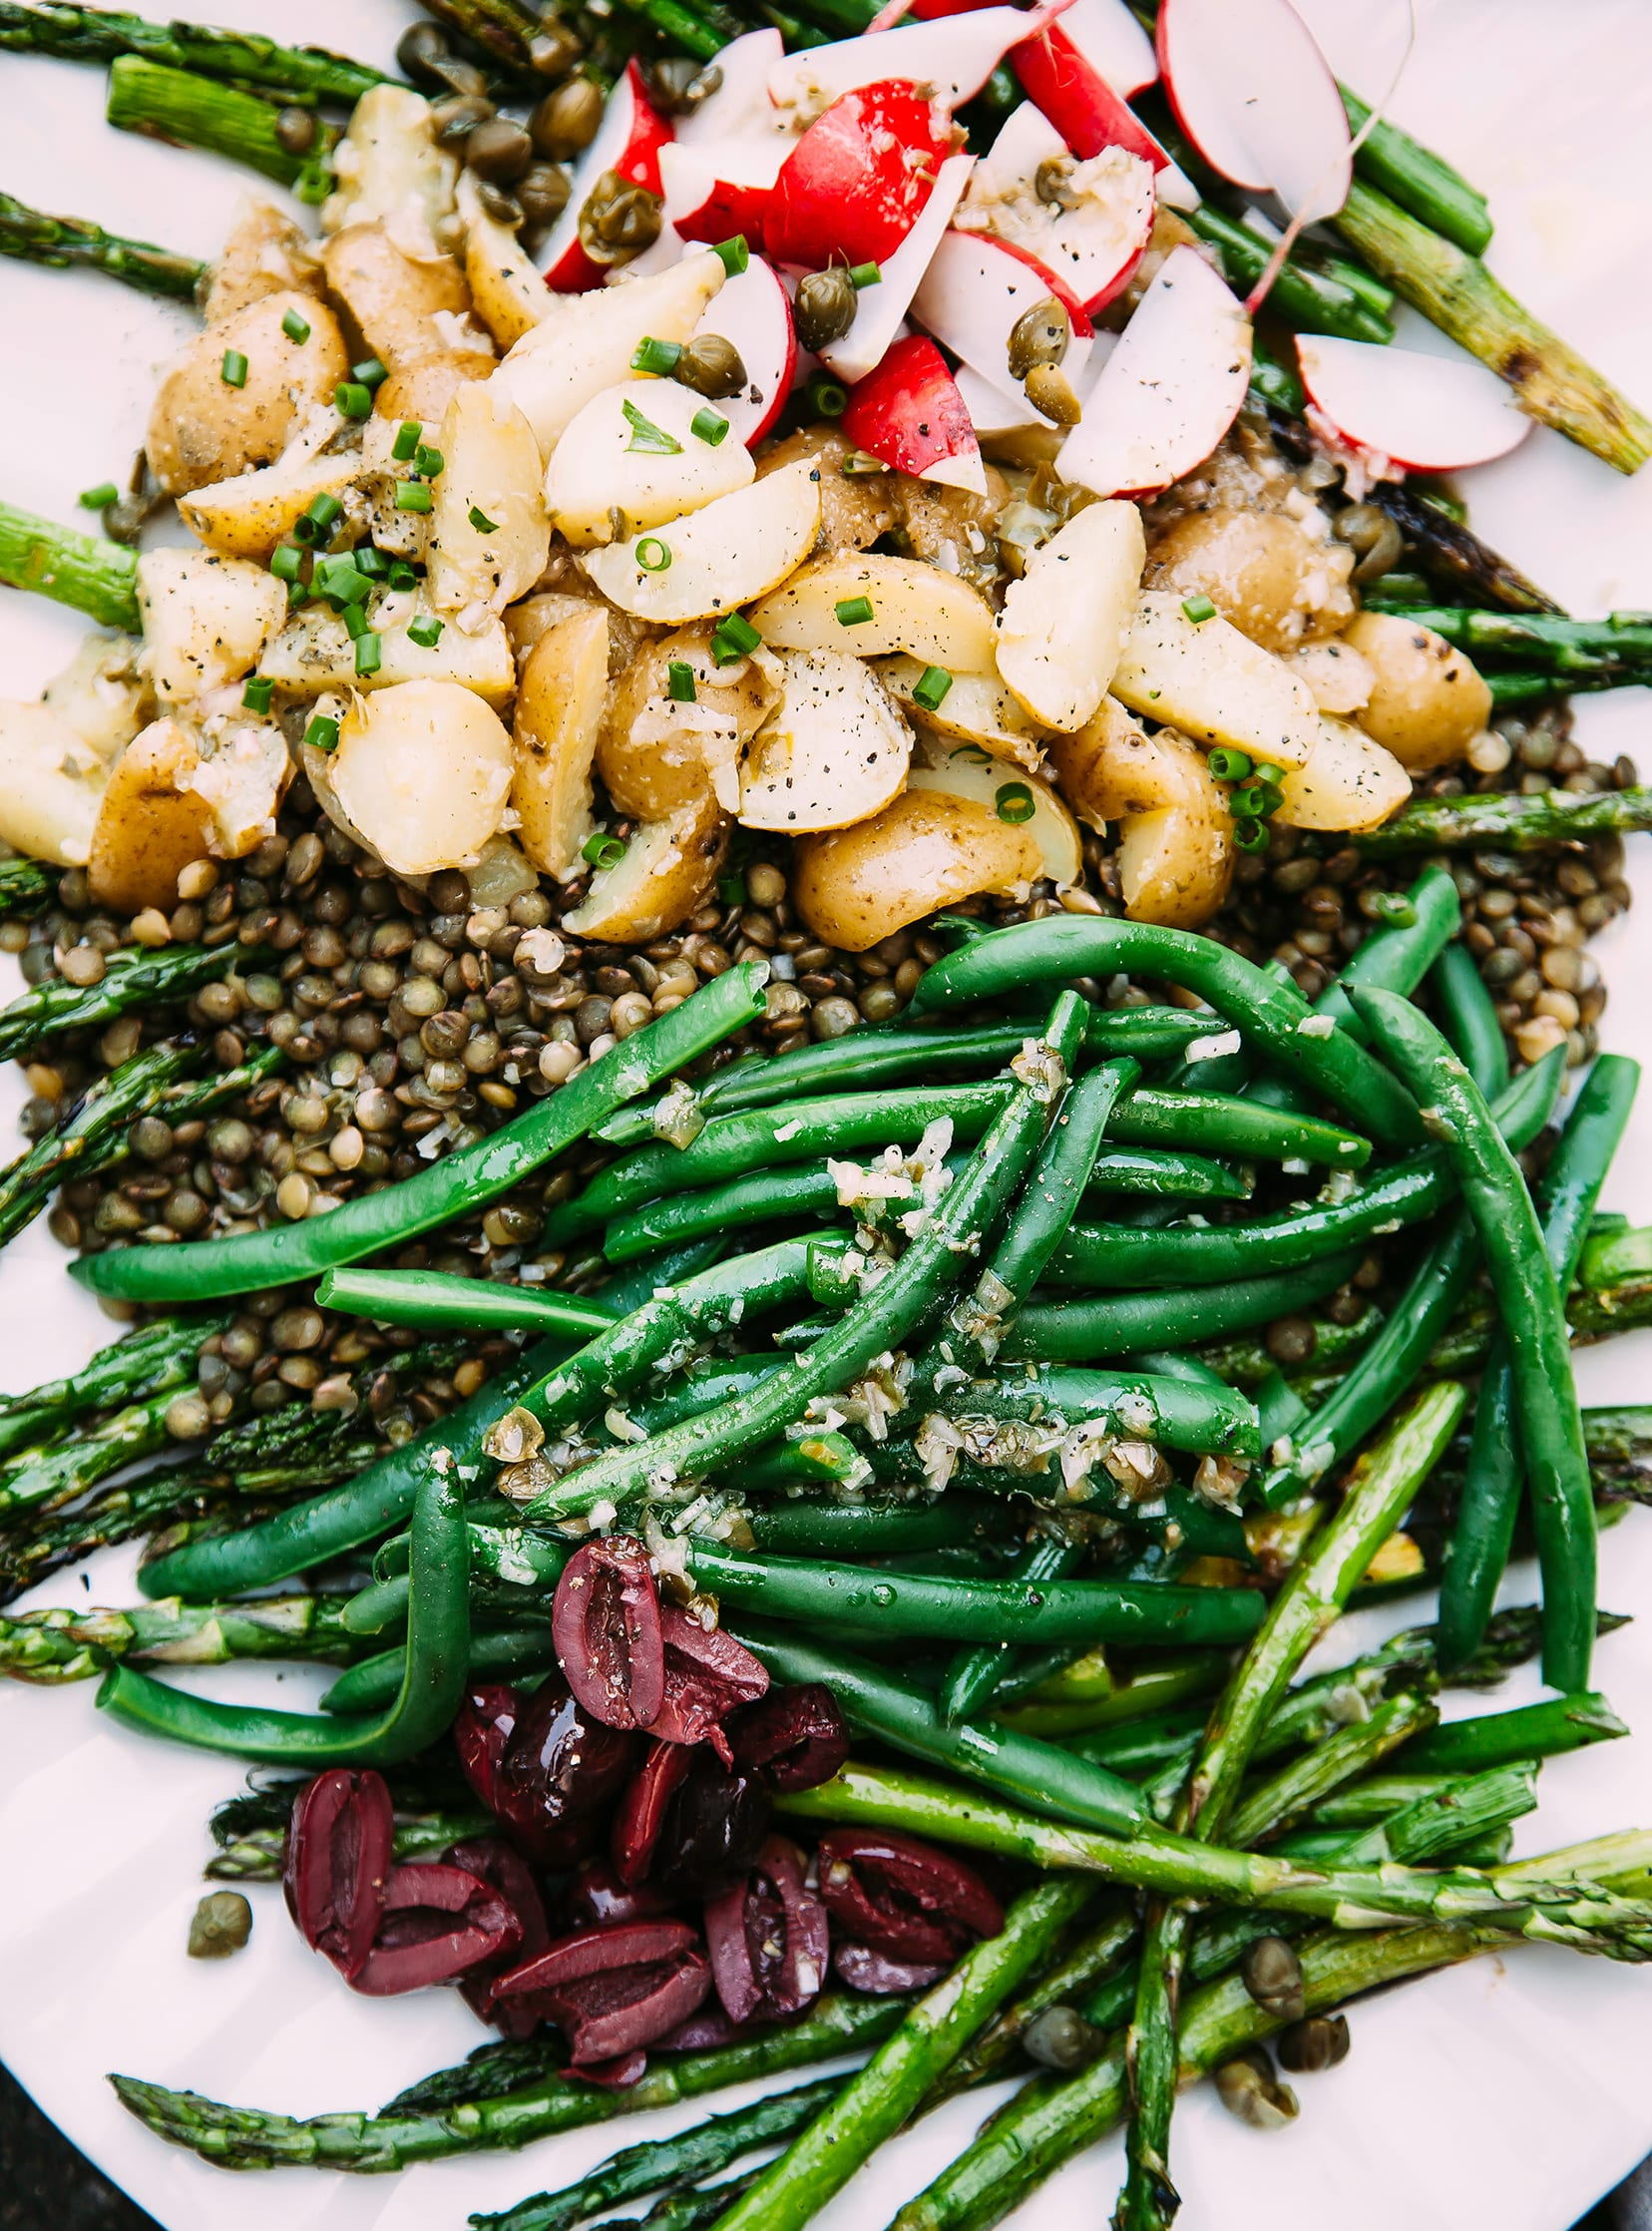 An overhead image of a vegan niçoise style salad on a white platter.